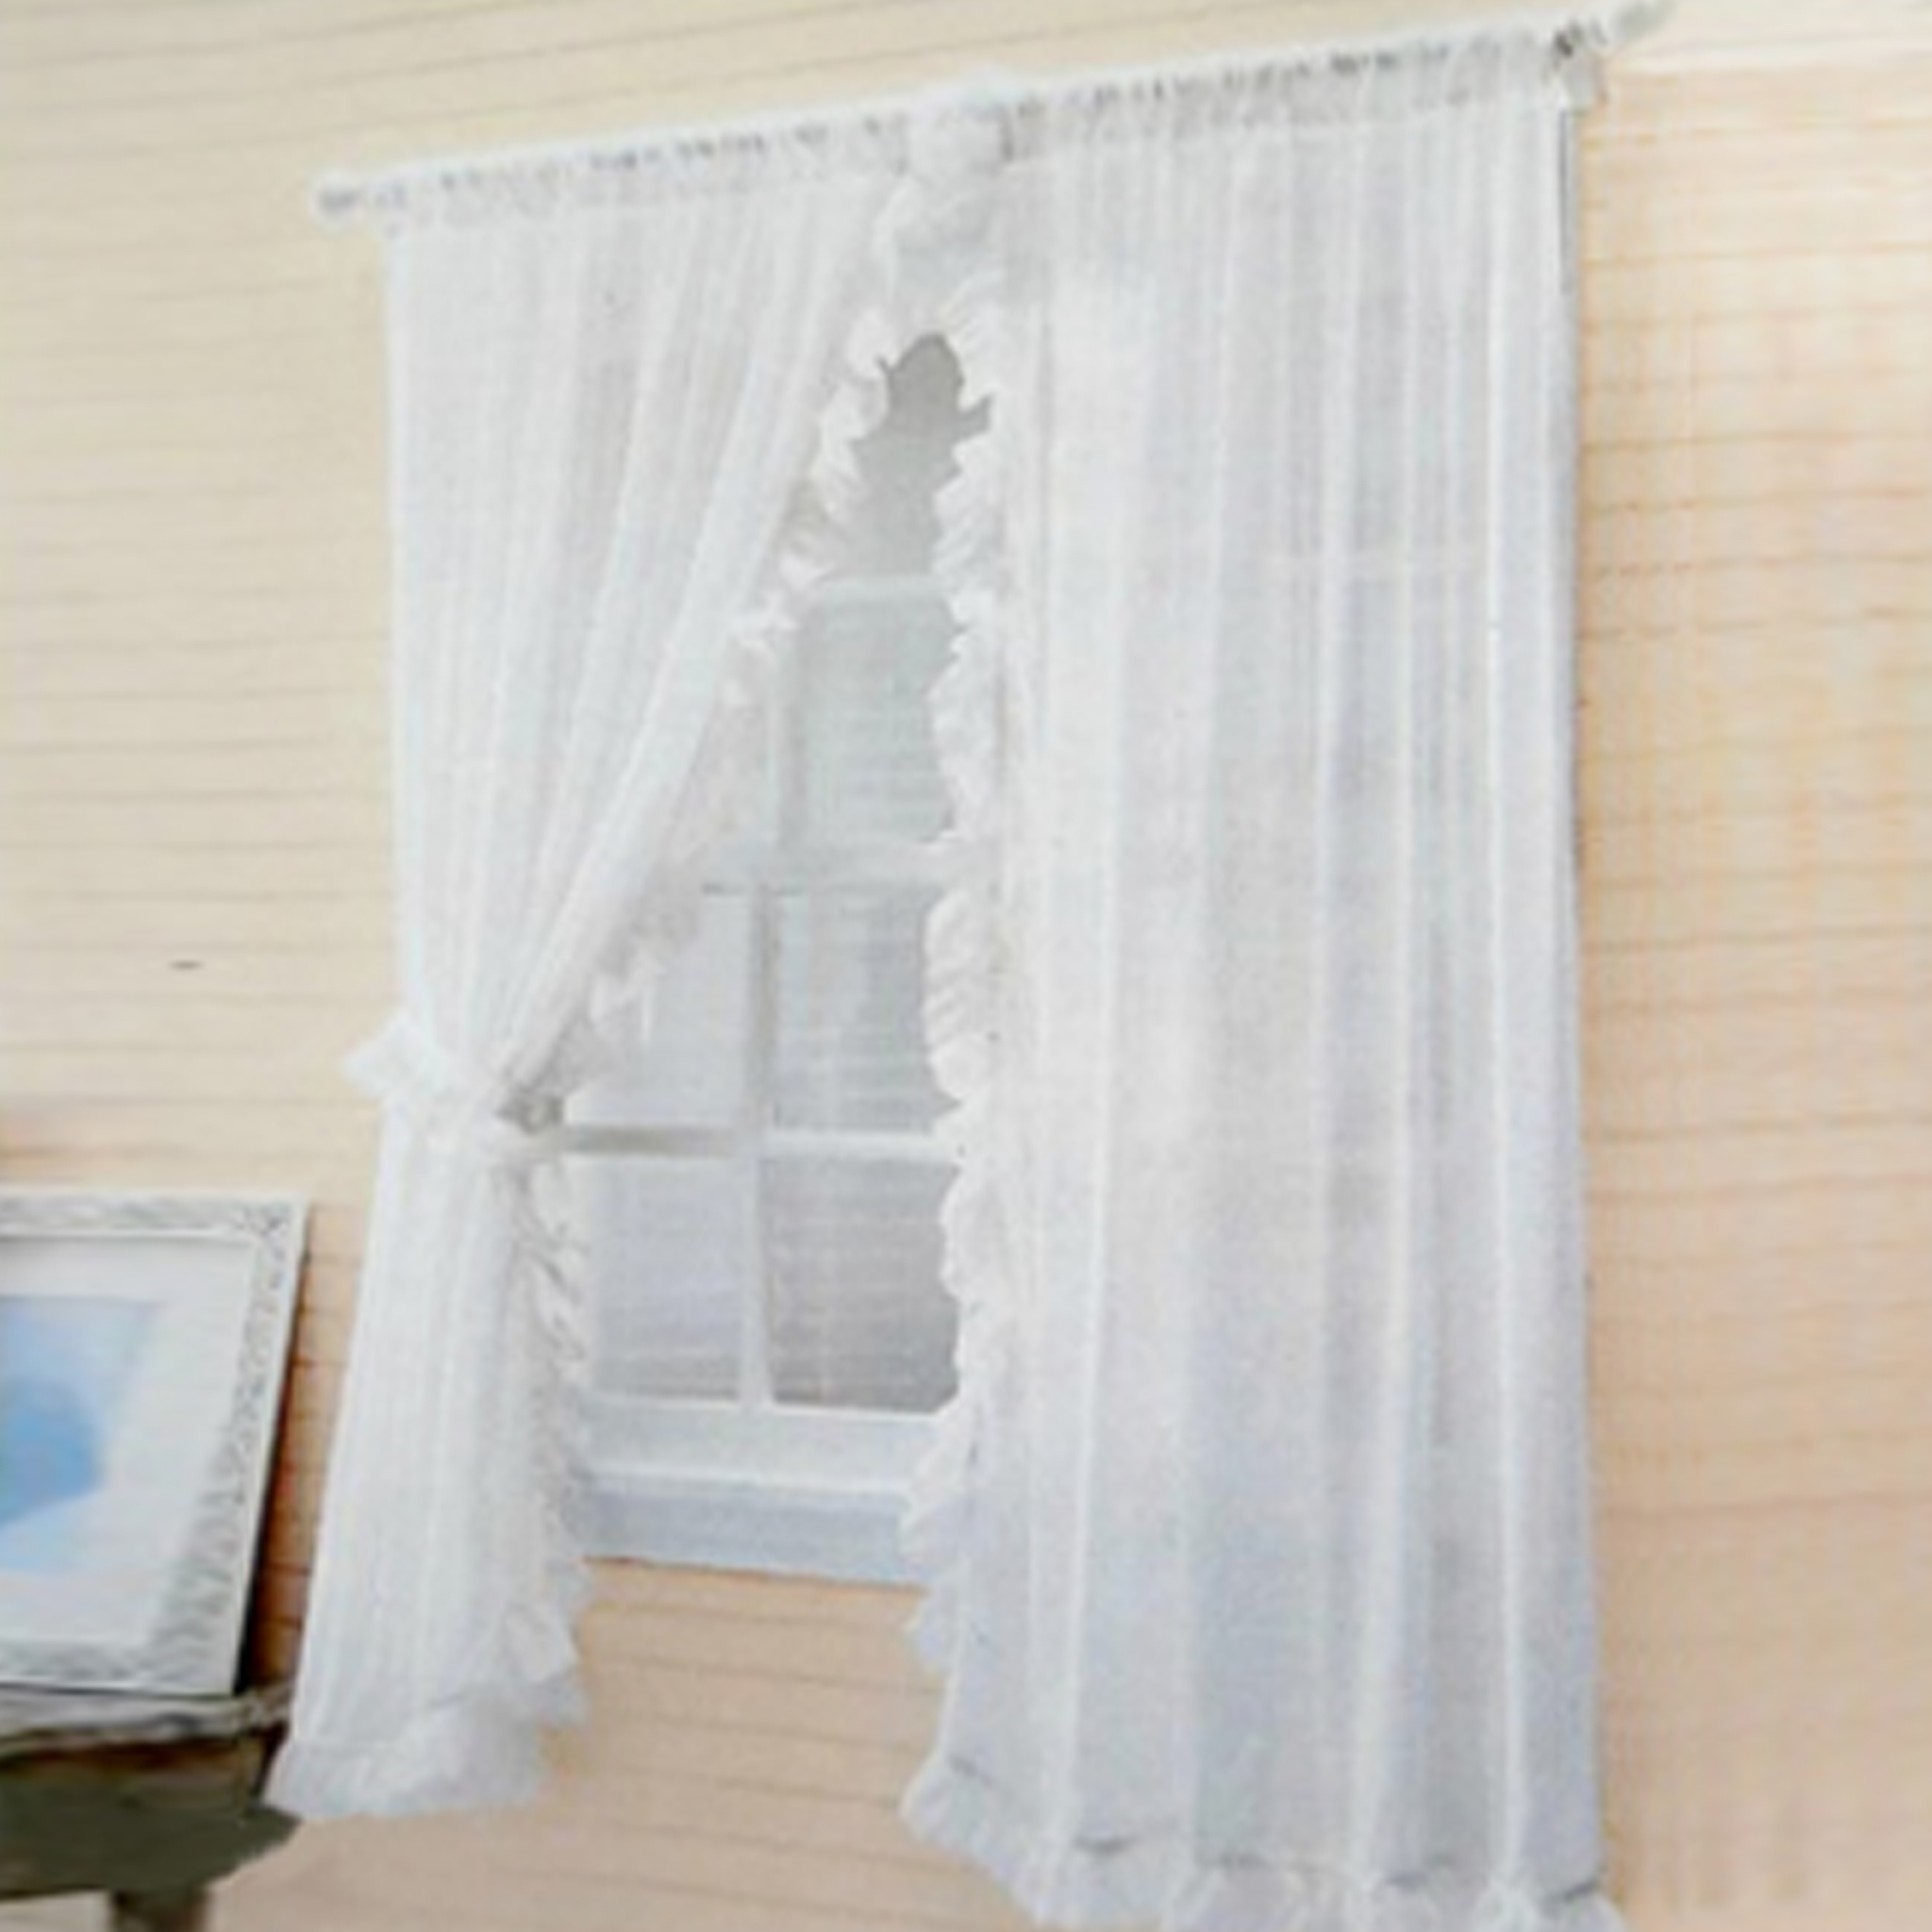 Kitchen Curtains At Big Lots: Window Curtain Purfle Decoration Sheer Curtain Valance For